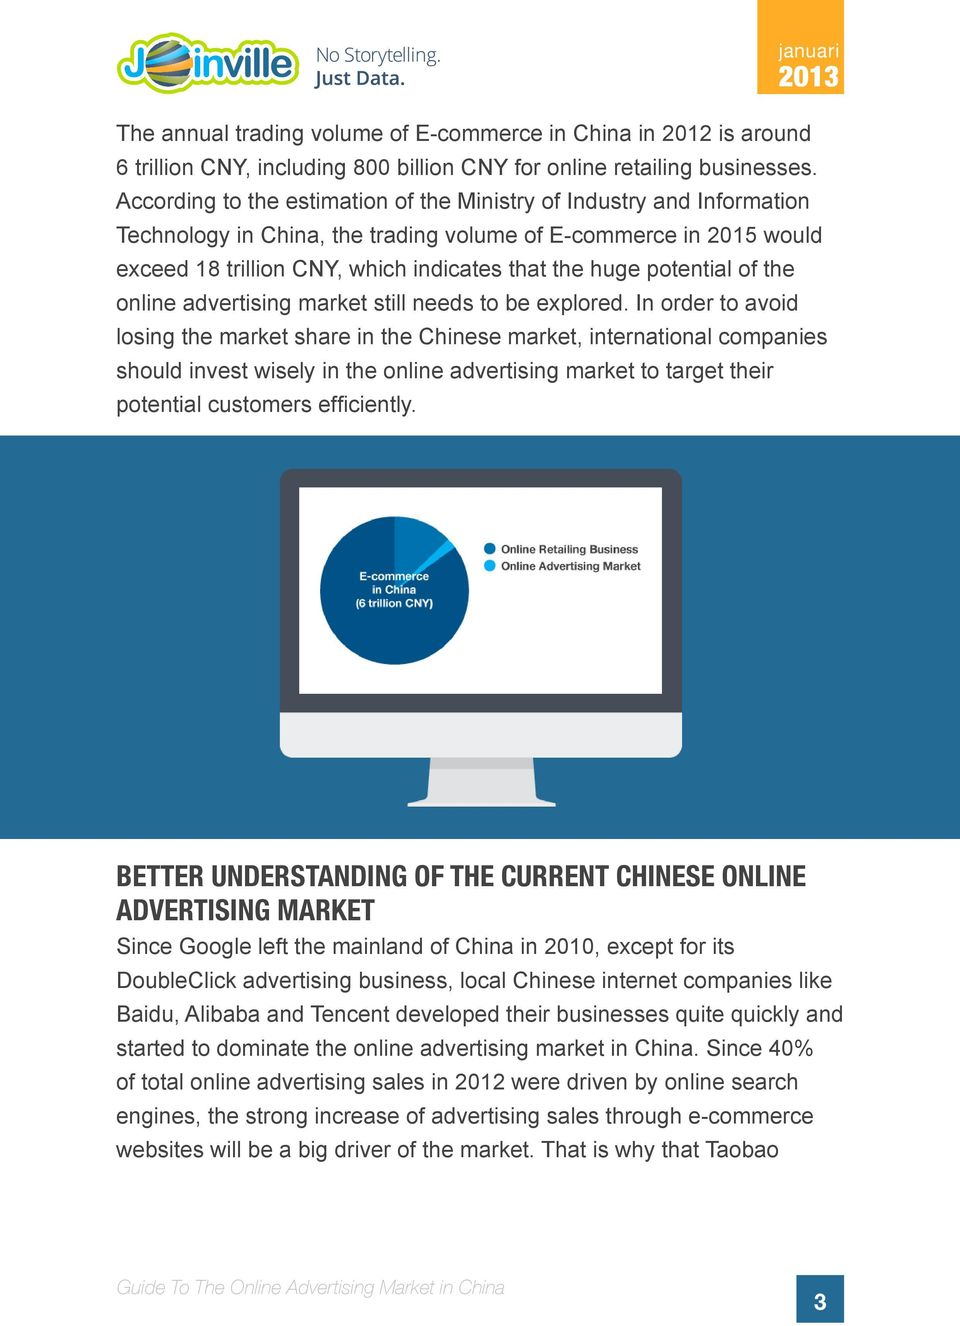 potential of the online advertising market still needs to be explored.